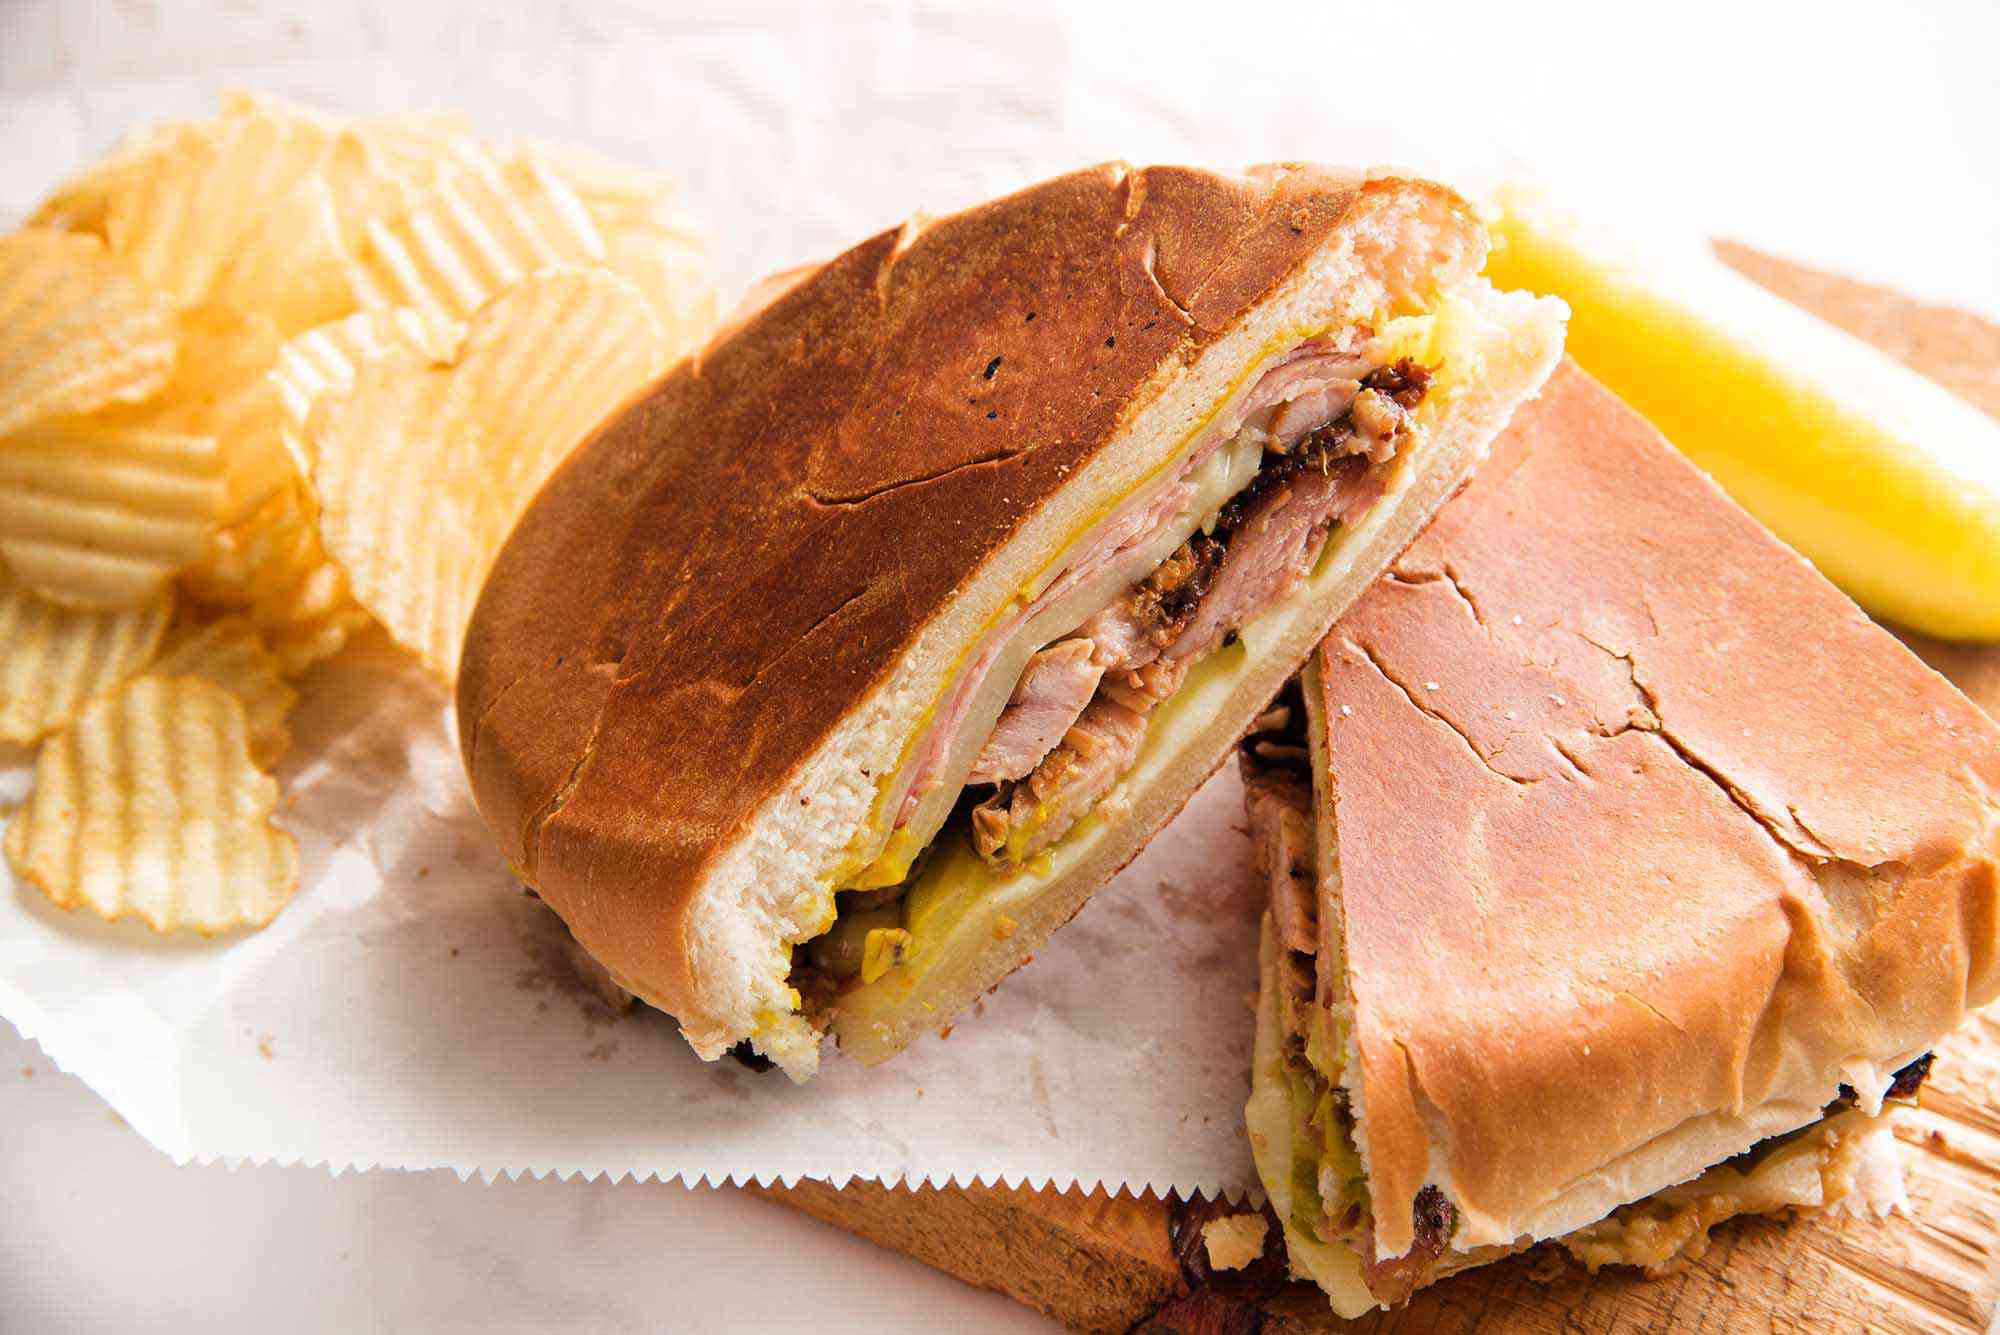 Two halves of a traditional cuban sandwich are resting on parchment paper and a wooden cutting board. Ridged potato chips and a pickle are in the background.